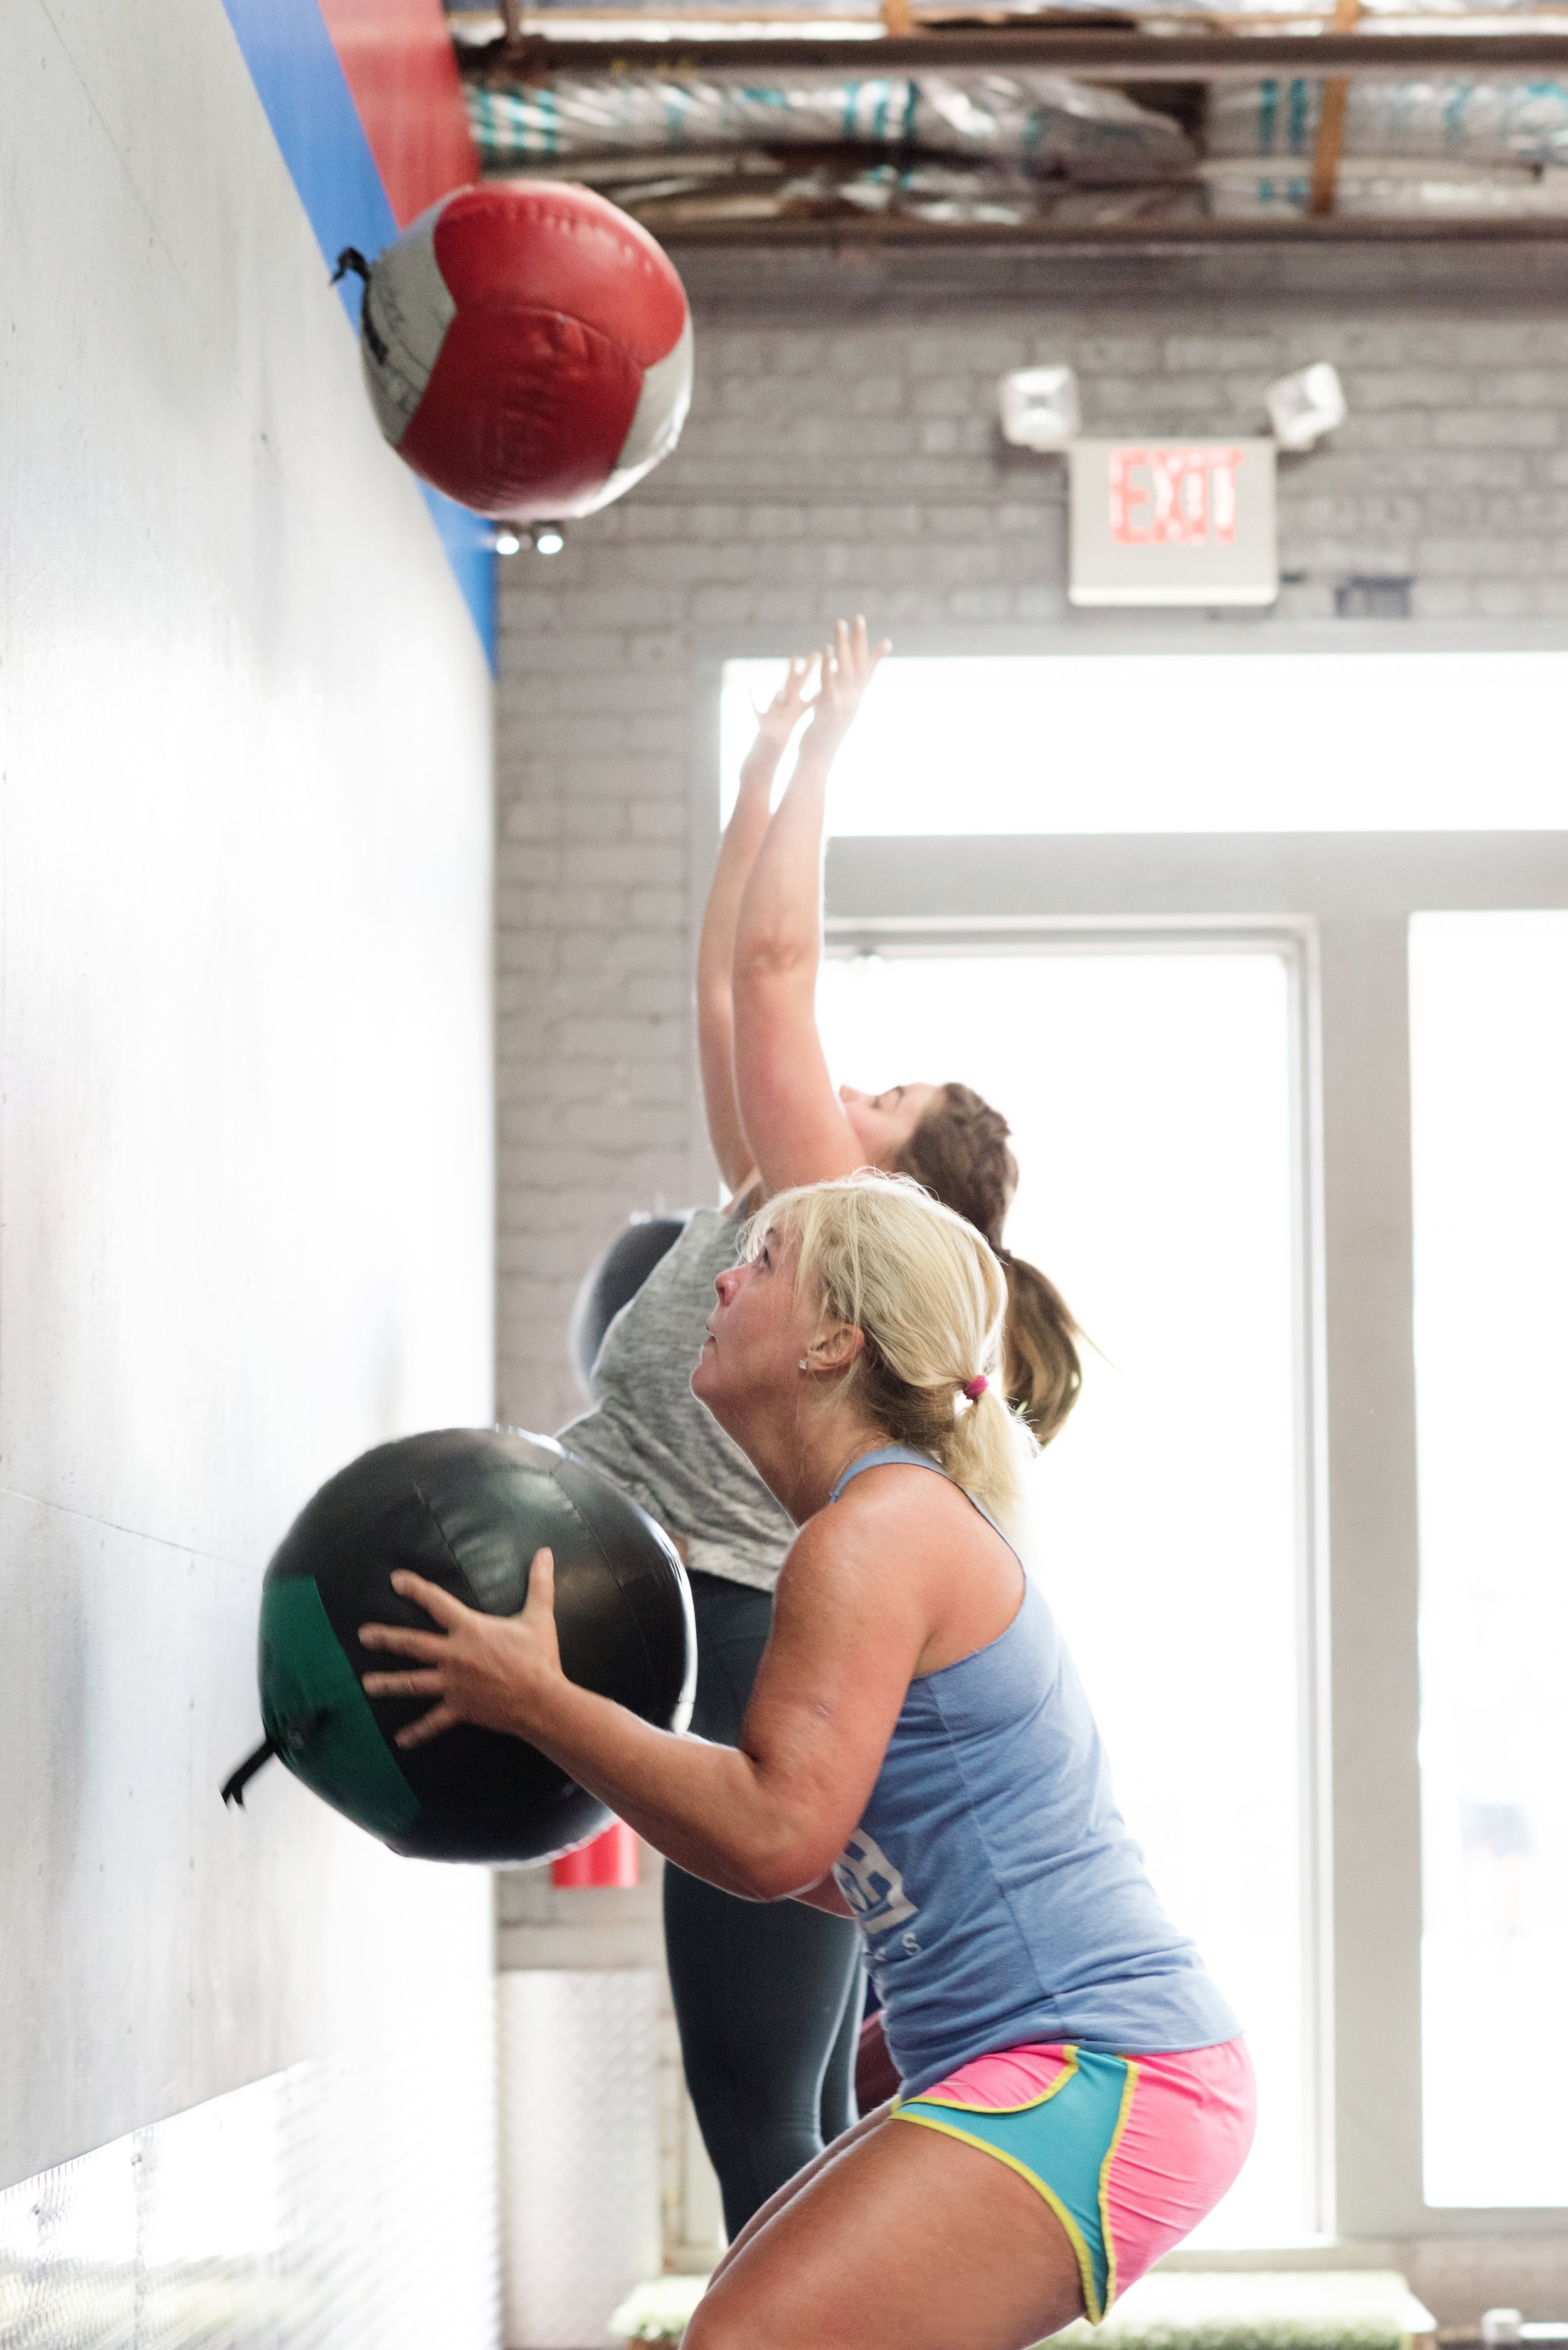 Brand new to CrossFit? First time in a gym? -